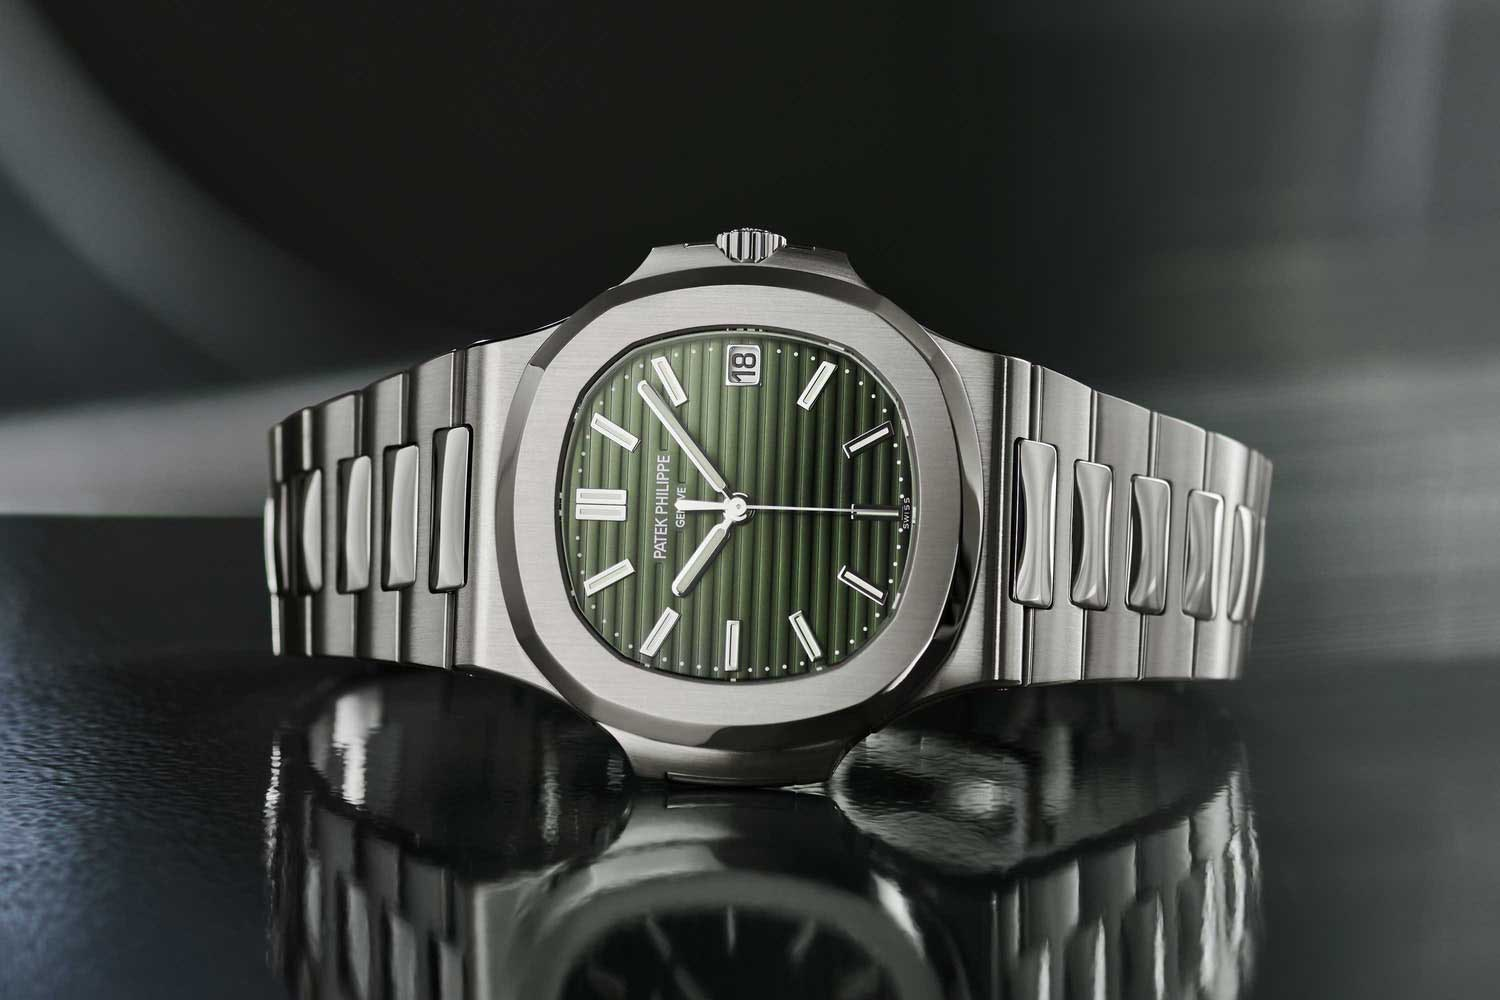 Patek Philippe ref. 5711/1A-014 introduced in April this year.